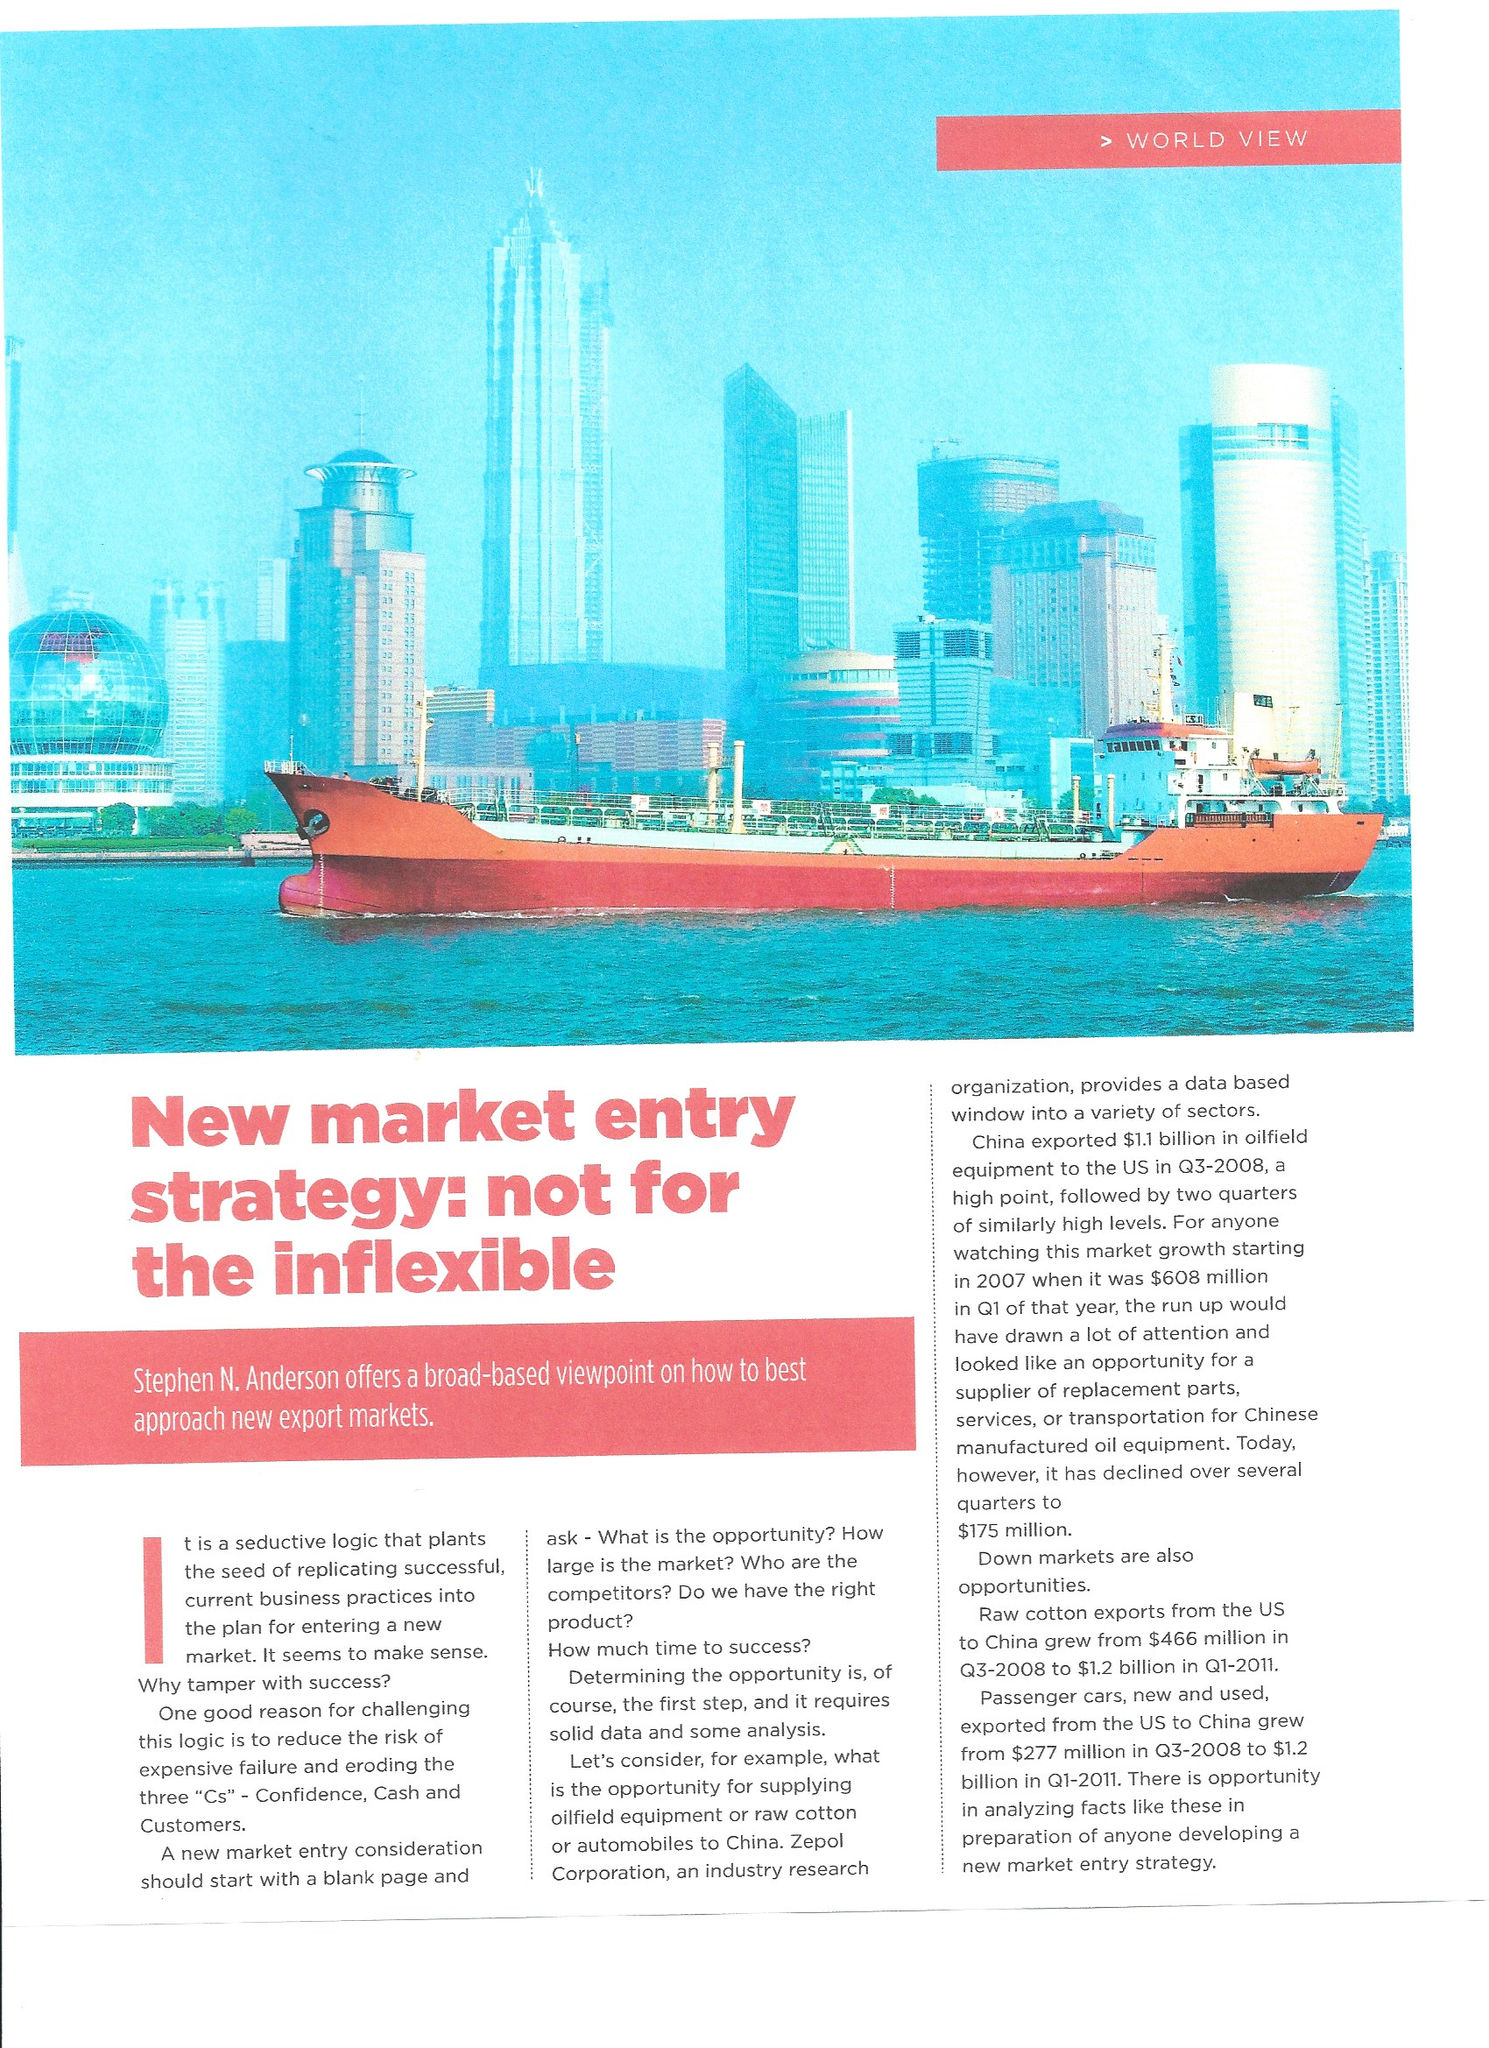 New Market Entry Strategy Not For The Inflexible